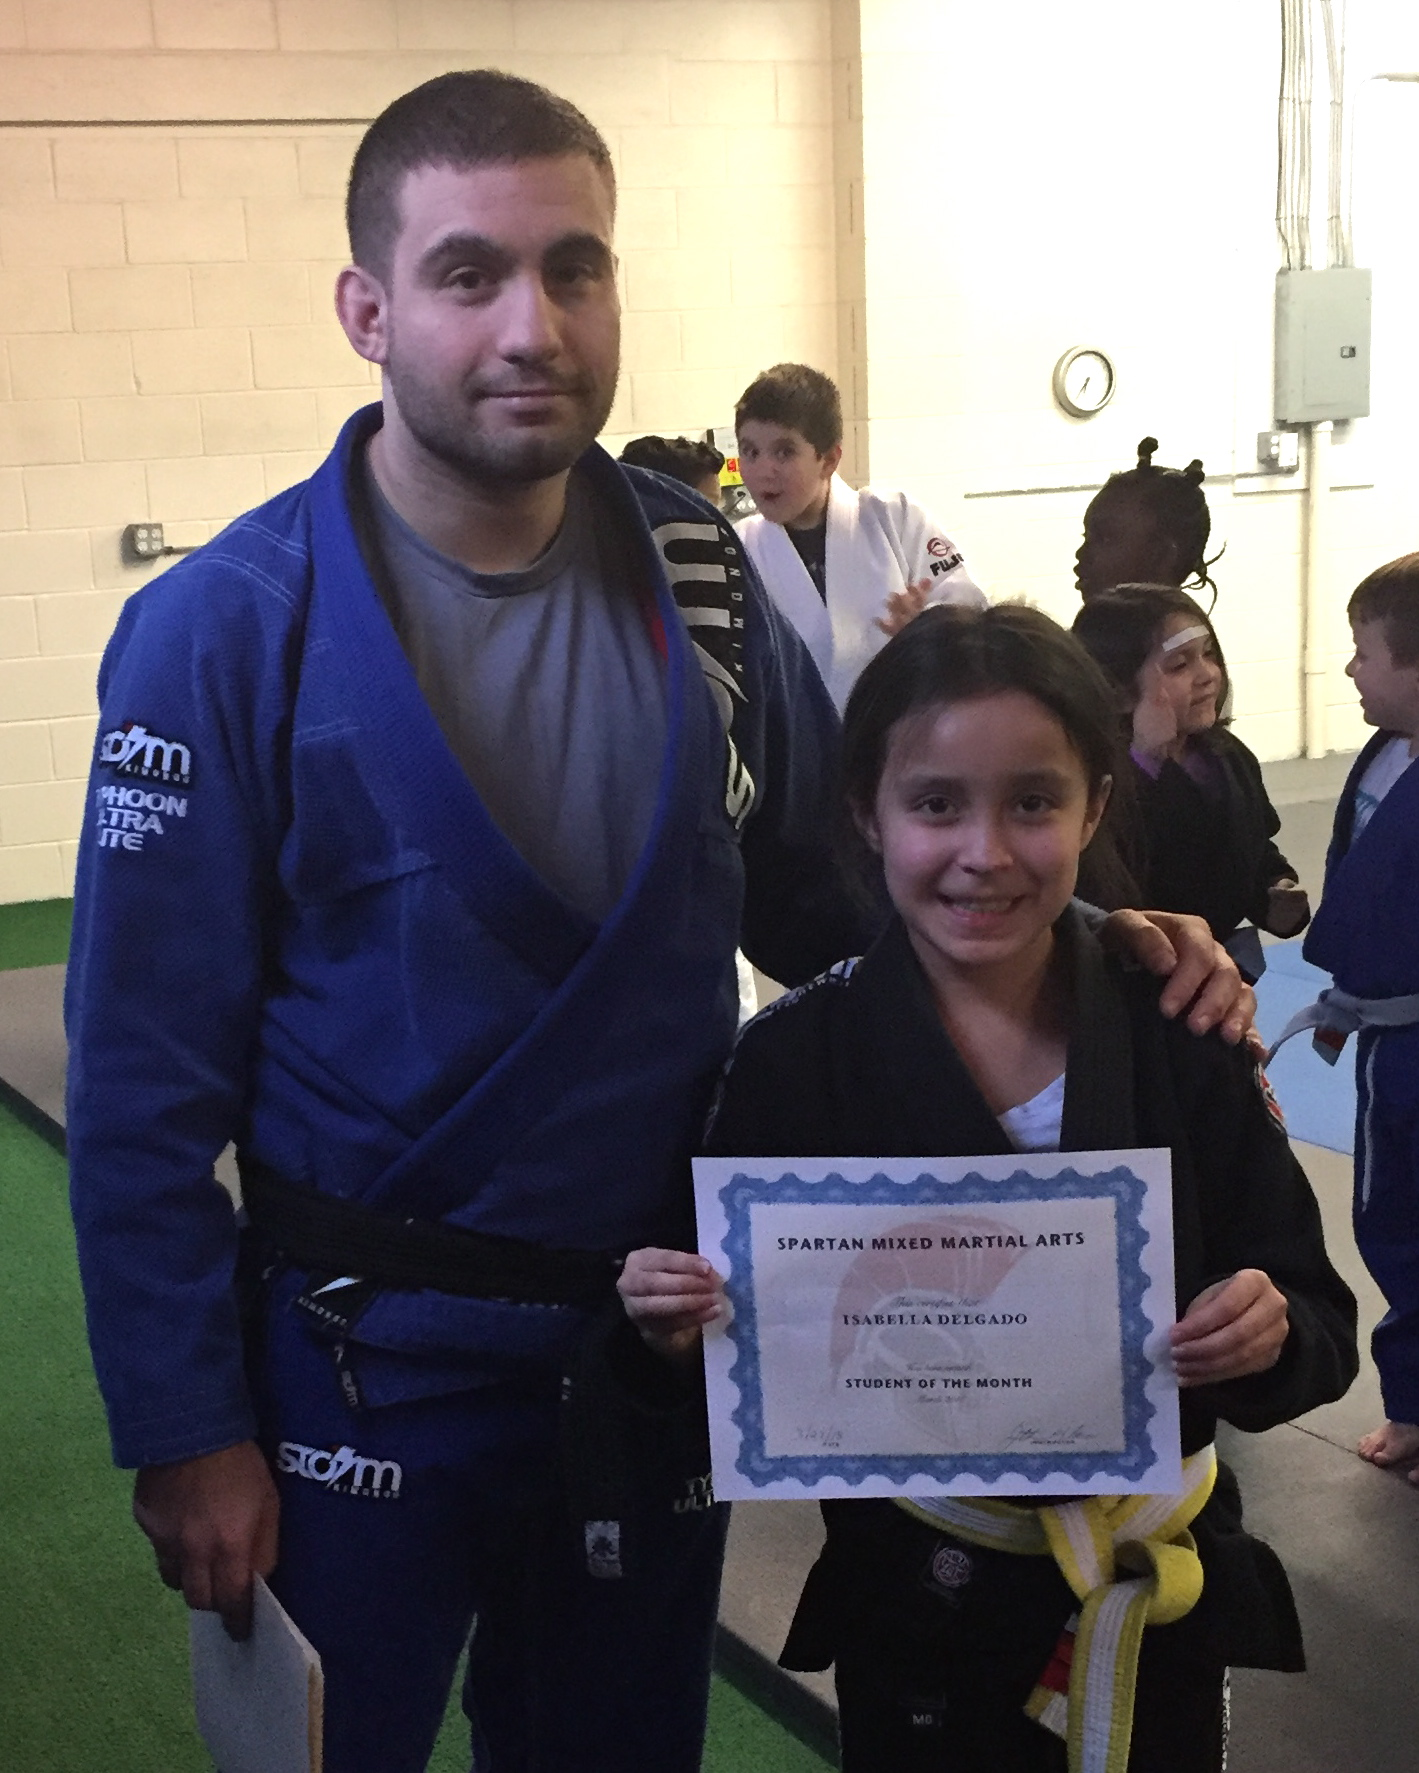 Kids Martial Arts Spartan Mixed Martial Arts Monmouth County Ocean Township NJ 07712